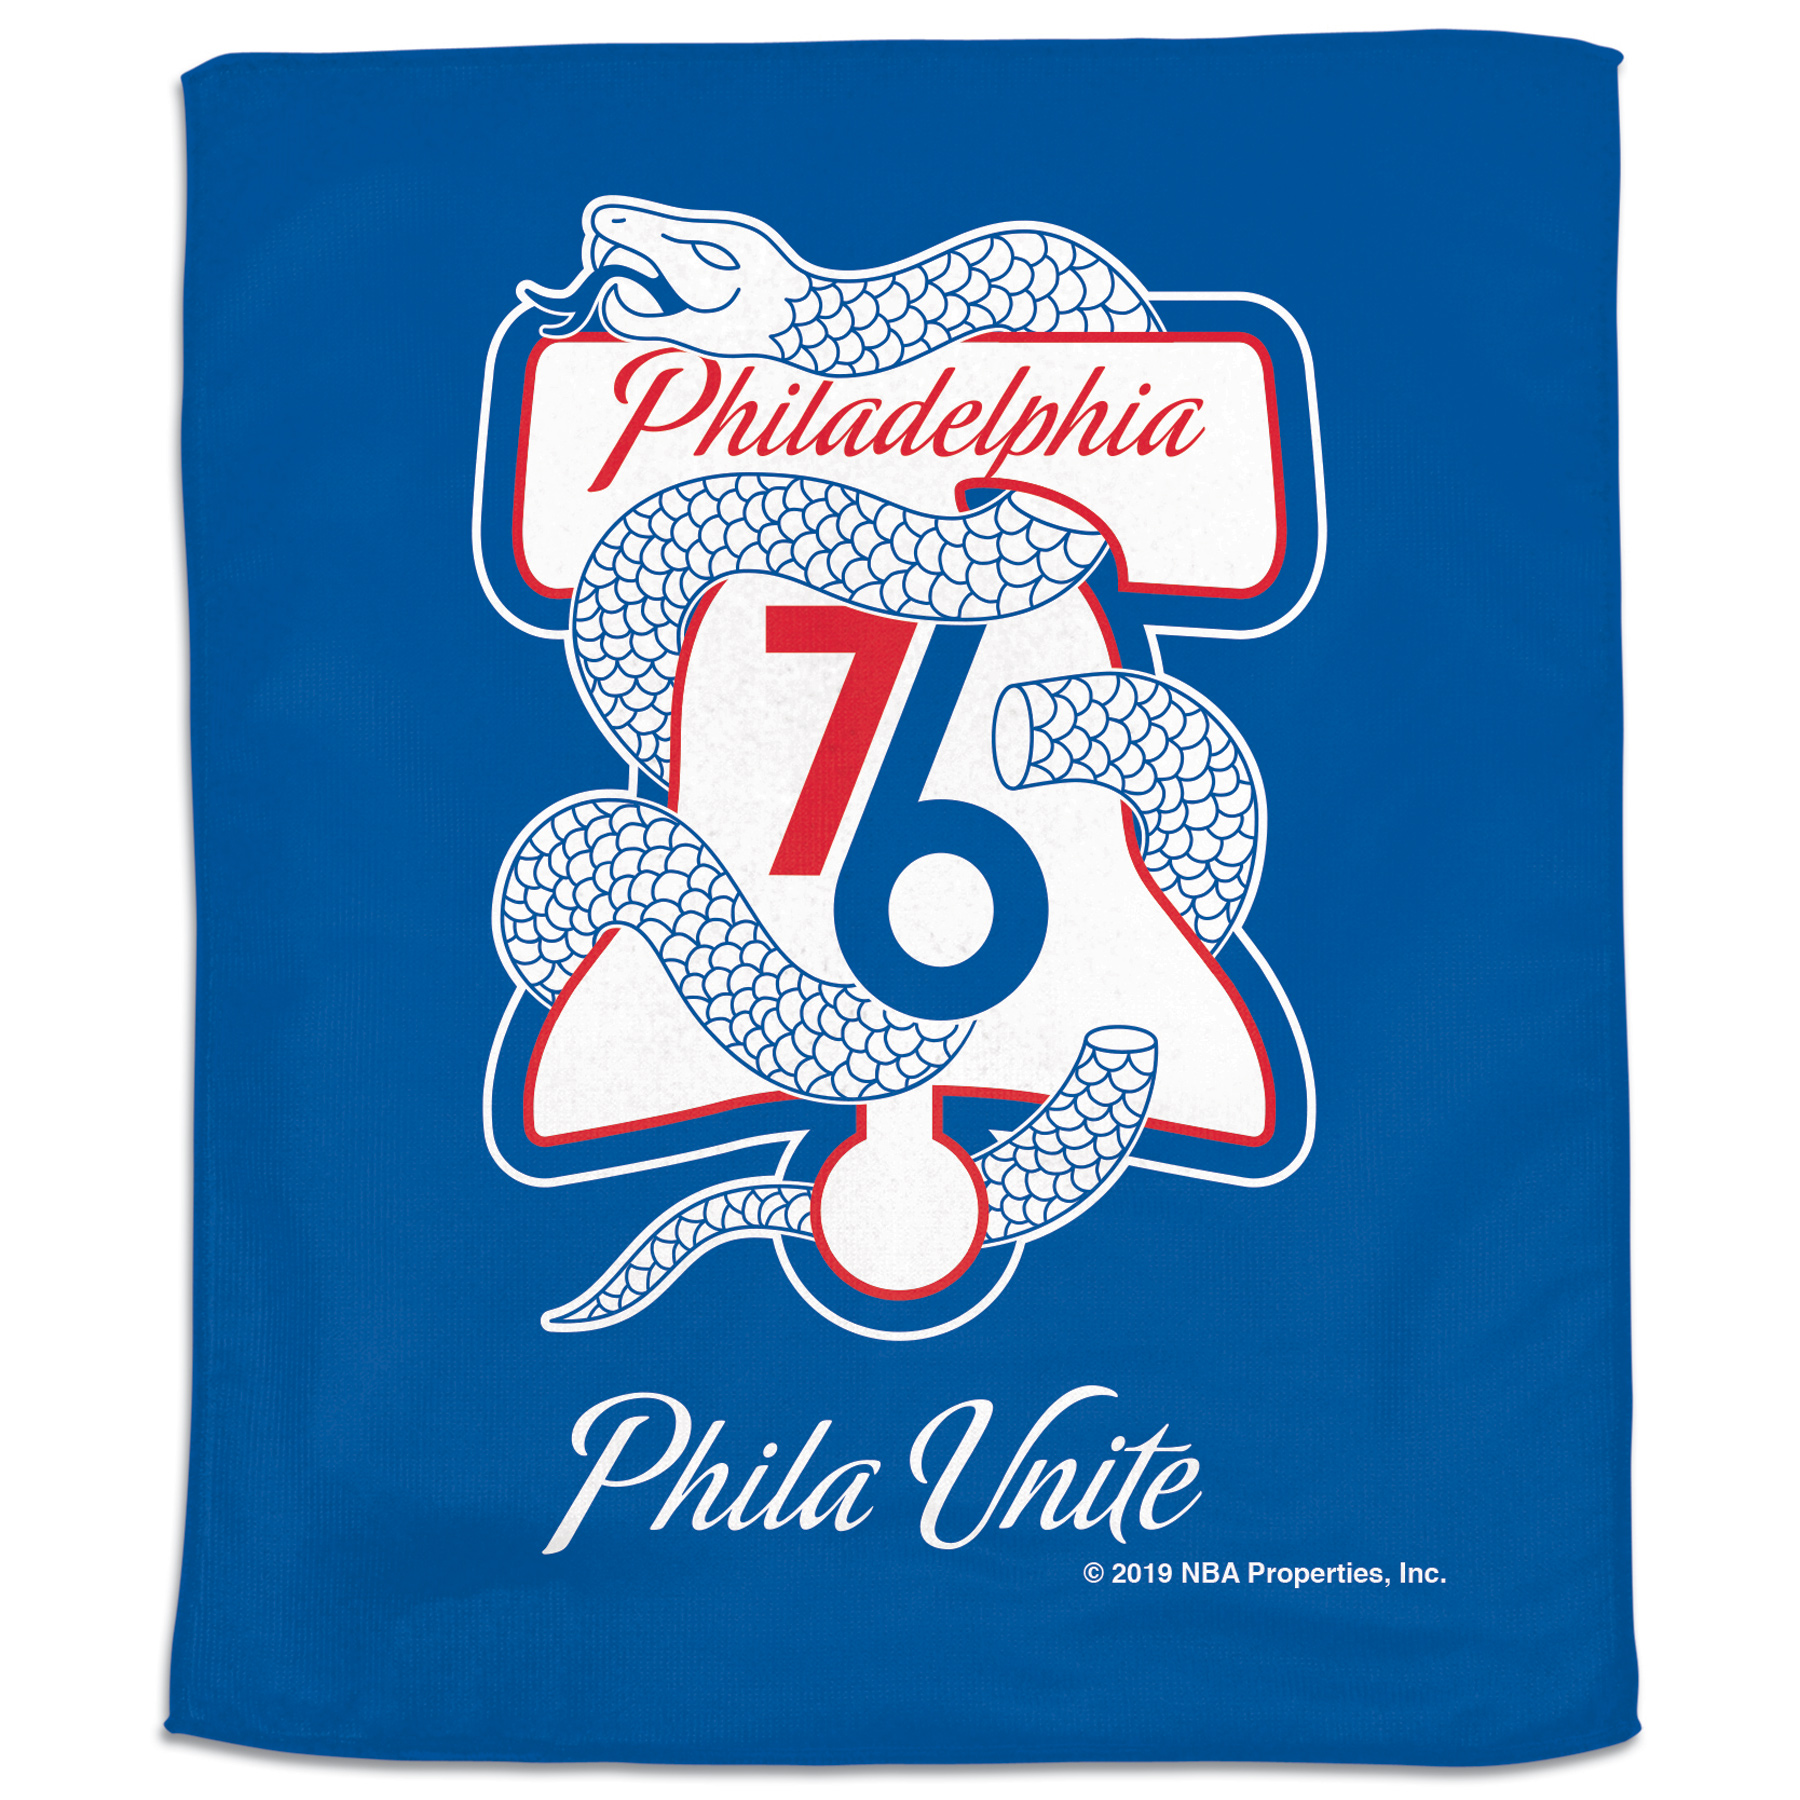 Philadelphia 76ers WinCraft 2019 NBA Playoffs Bound 15'' x 18'' Slogan Rally Towel - No Size